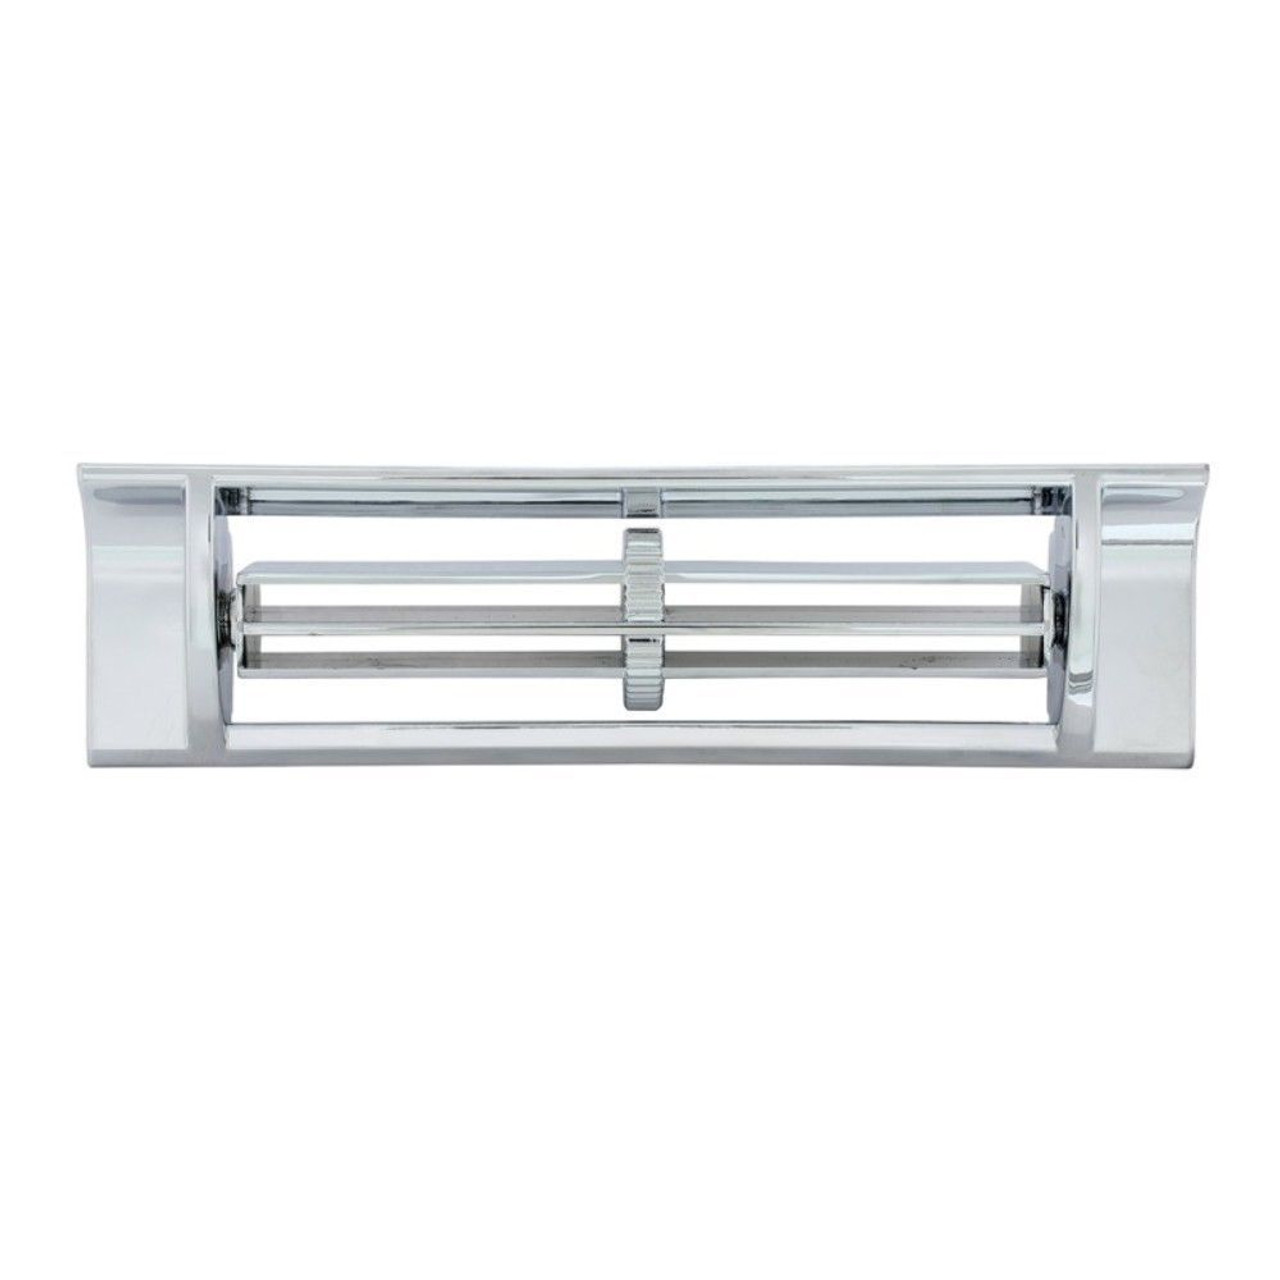 A/C Center Vent, Chrome Plated, Fits Chevy/GMC Truck 1967 1968 1970 1971 1972